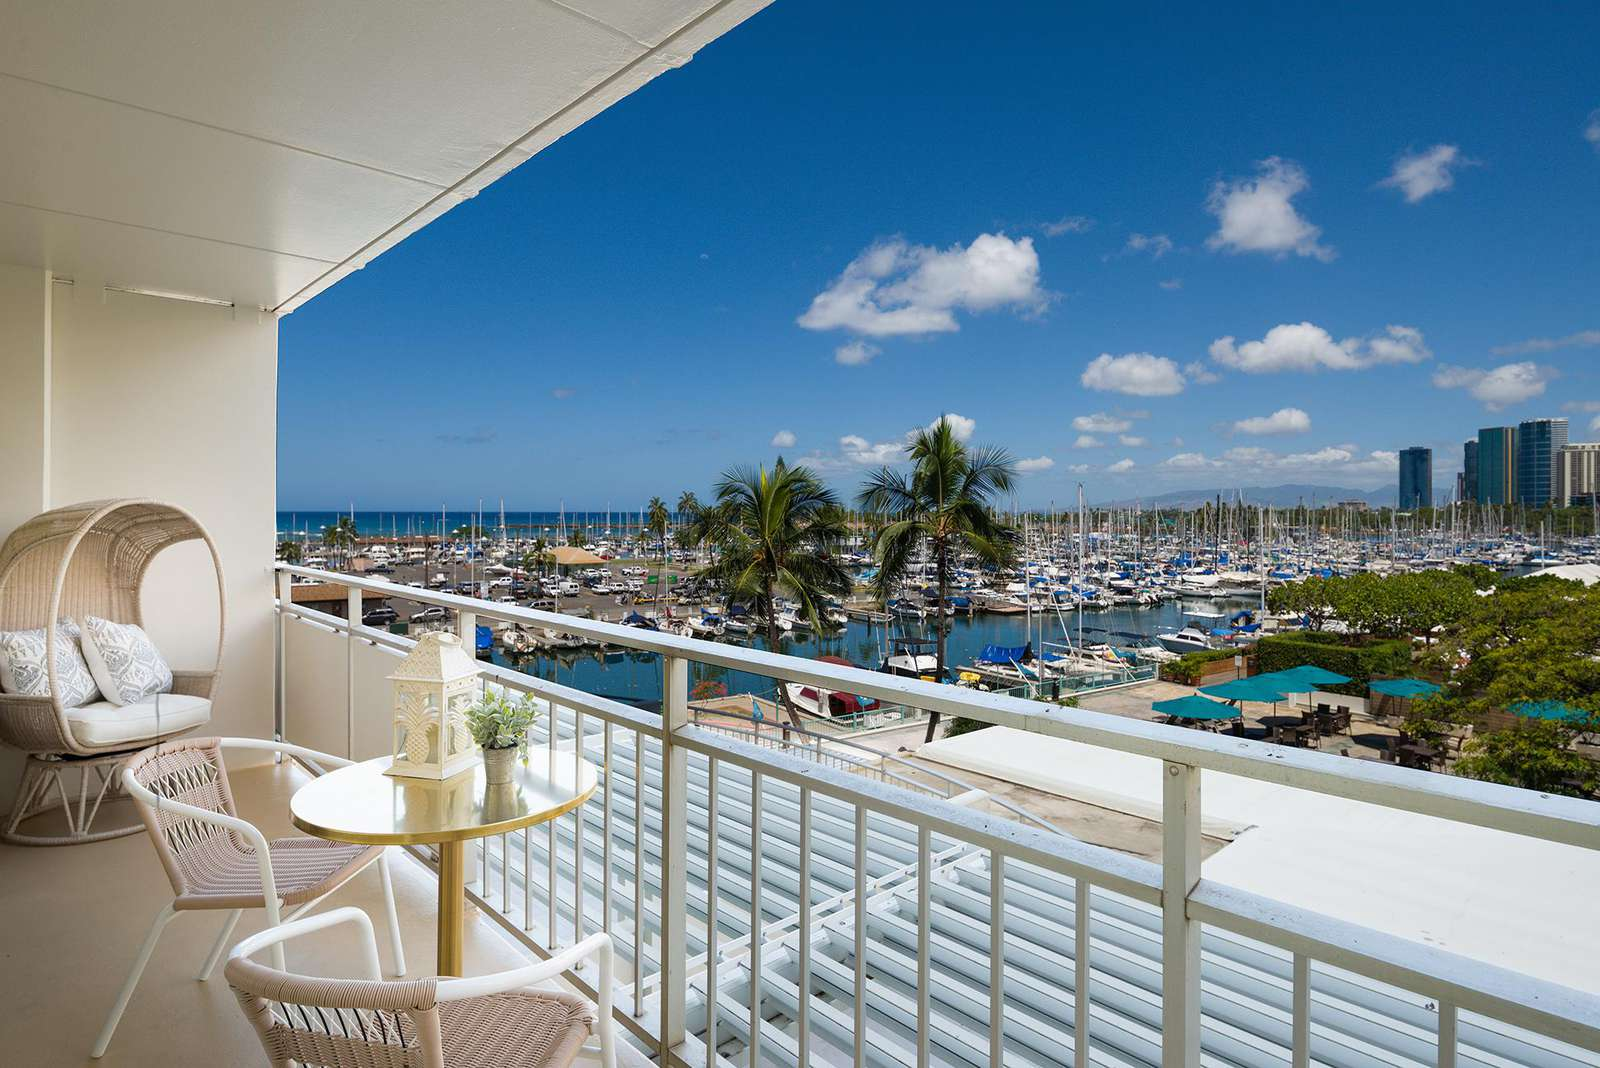 Amazing Ocean Views over Waikiki Yacht Harbor from the Lanai to Relax and Enjoy!